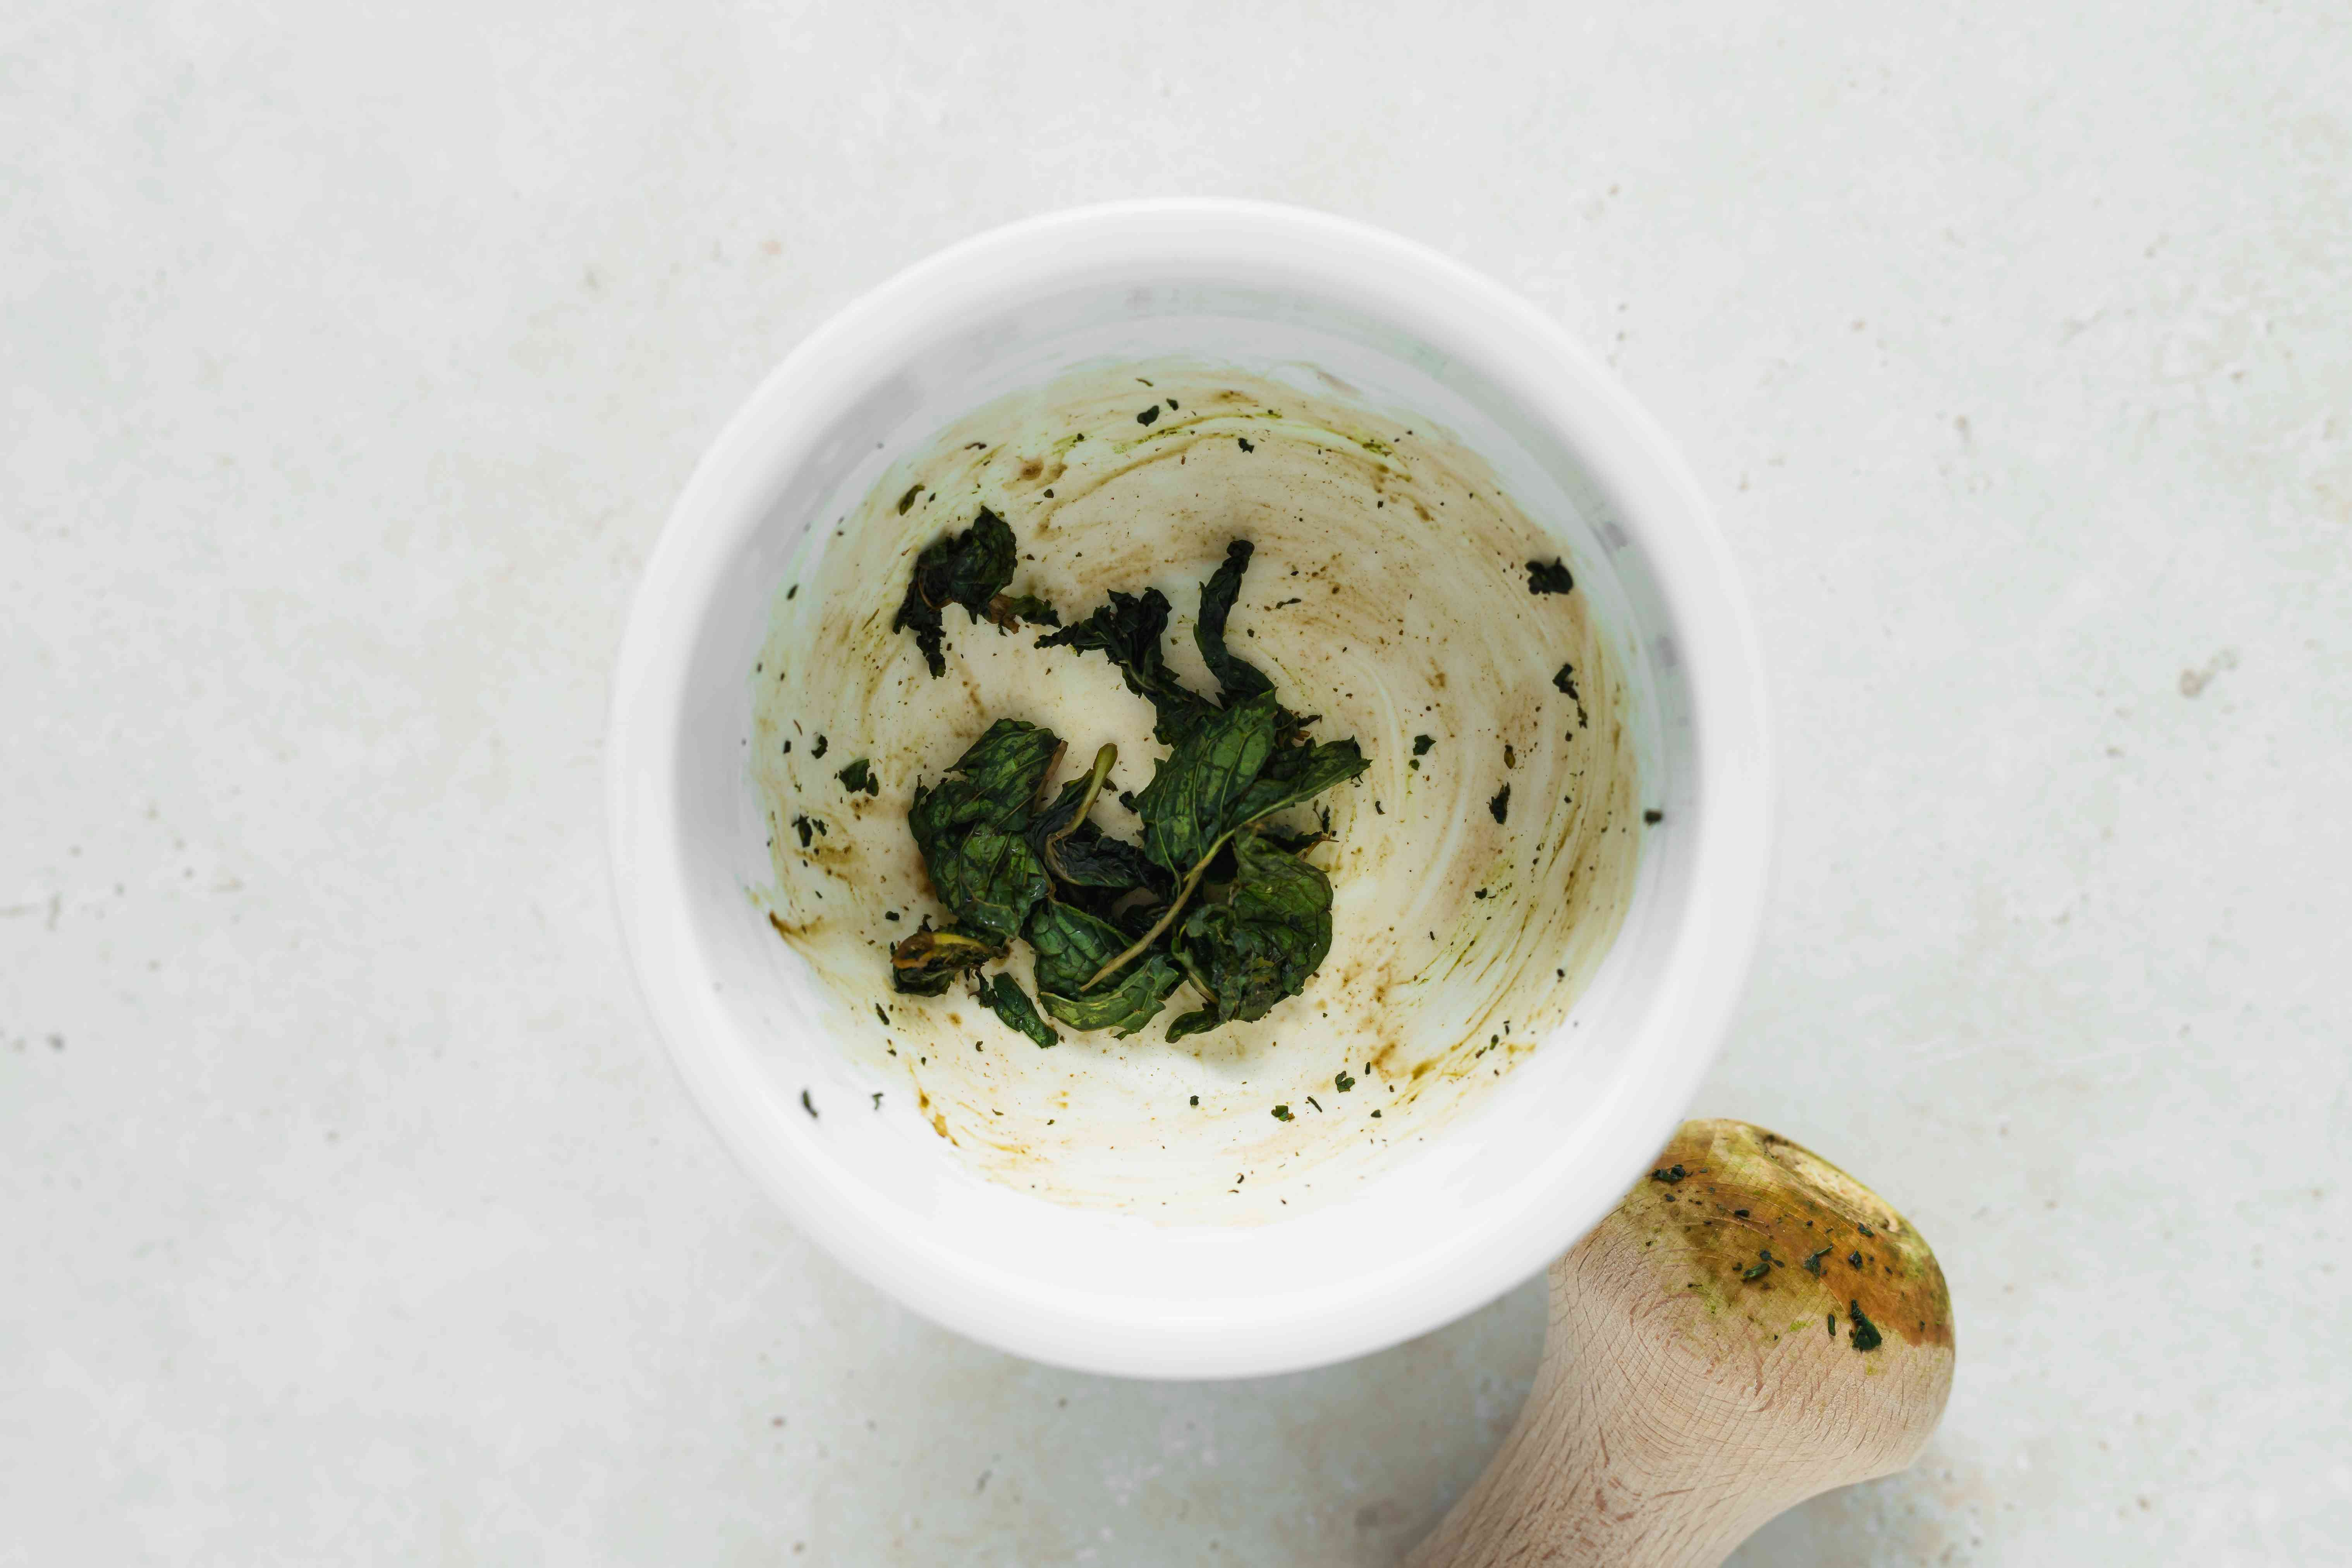 Mashing mint in a bowl for a wax beans recipe.